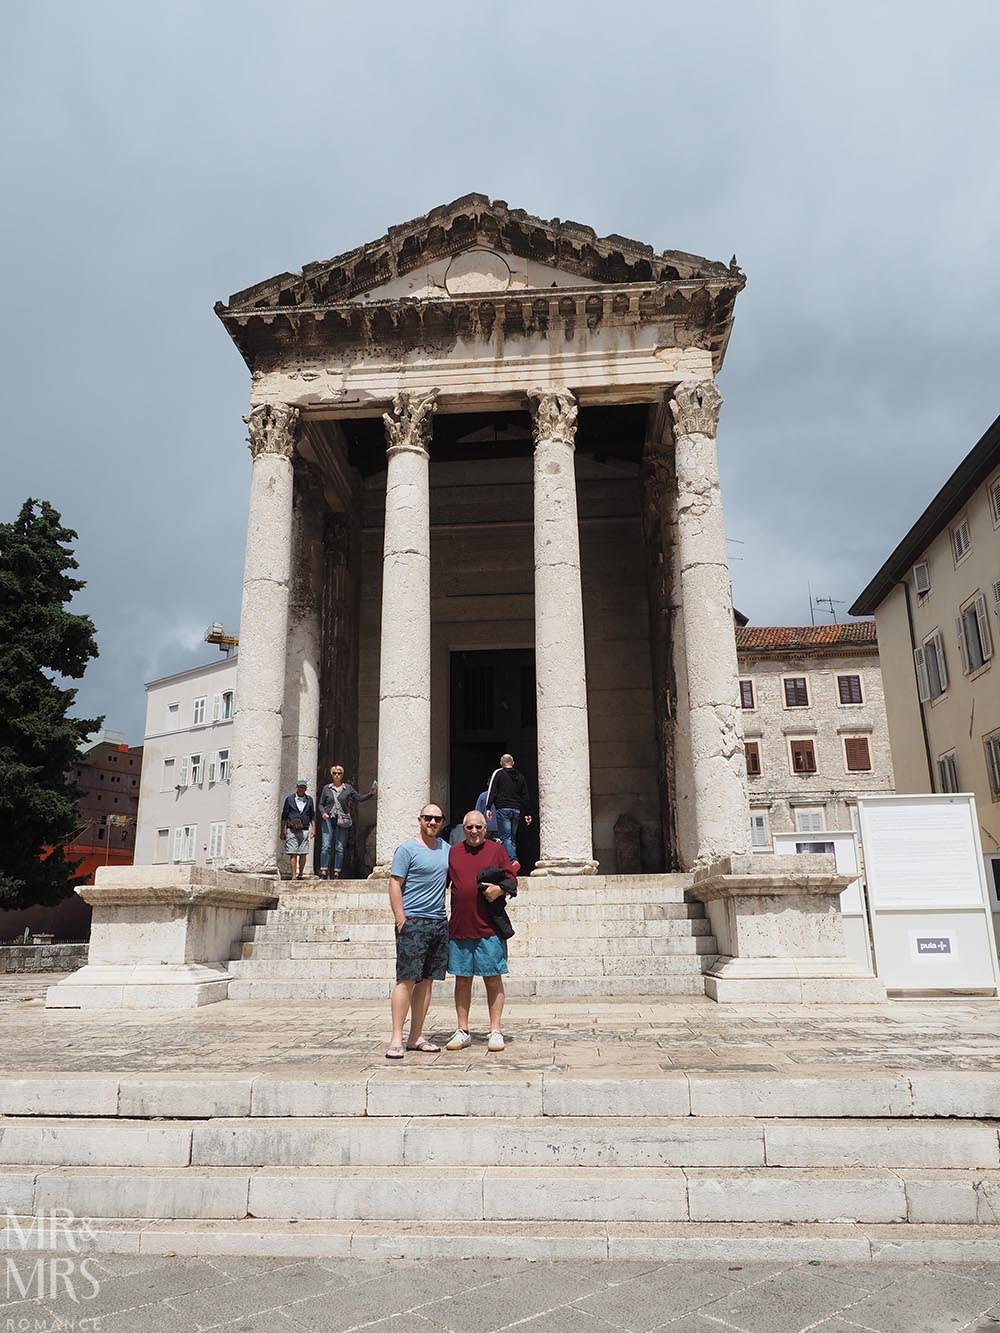 Where to go in Croatia - Pula, Istria